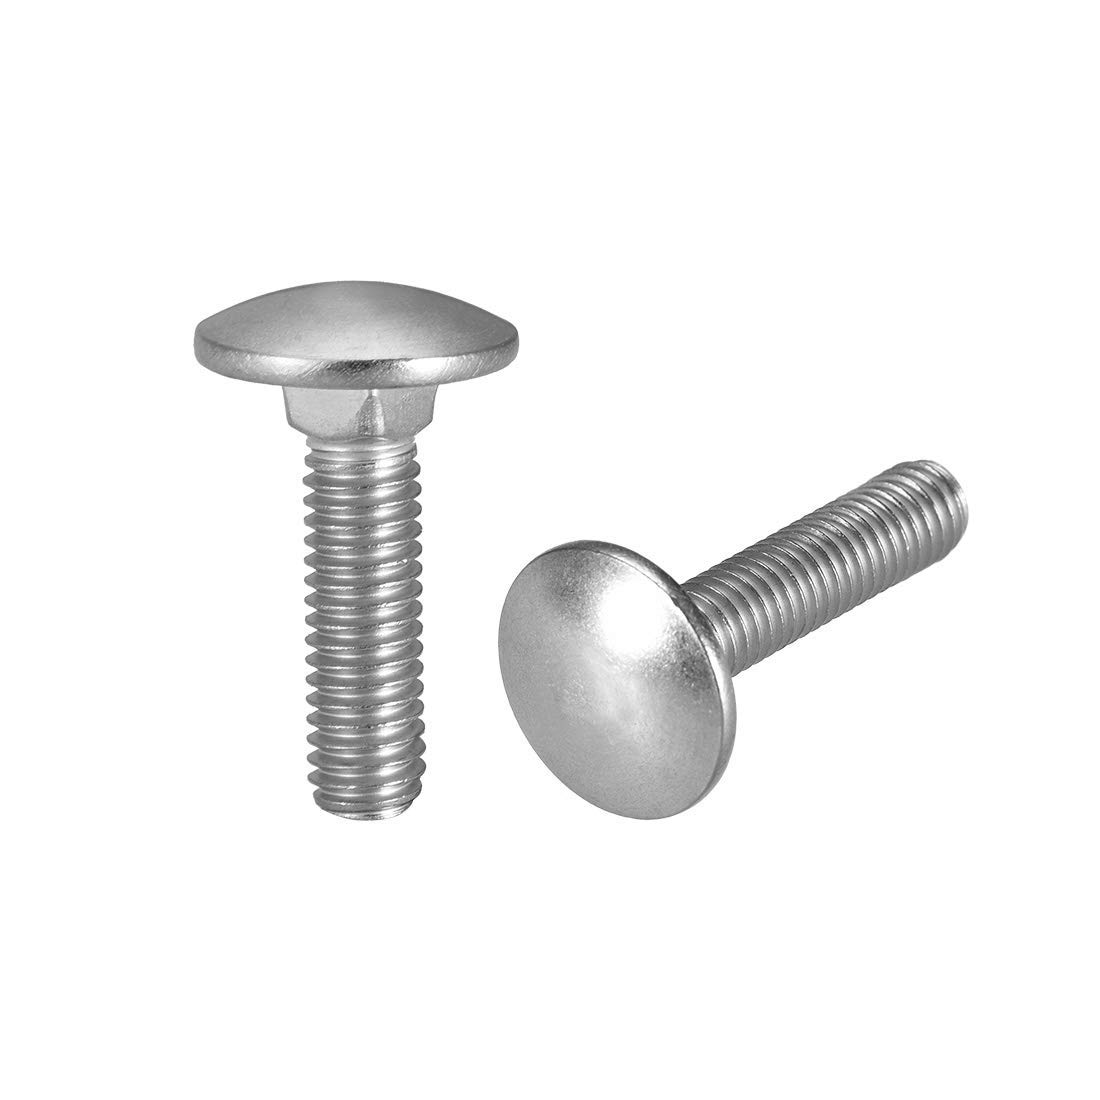 Round Head Neck Bolt Square Neck 304 Stainless Steel M6x20mm 30 Pieces Carriage Bolts